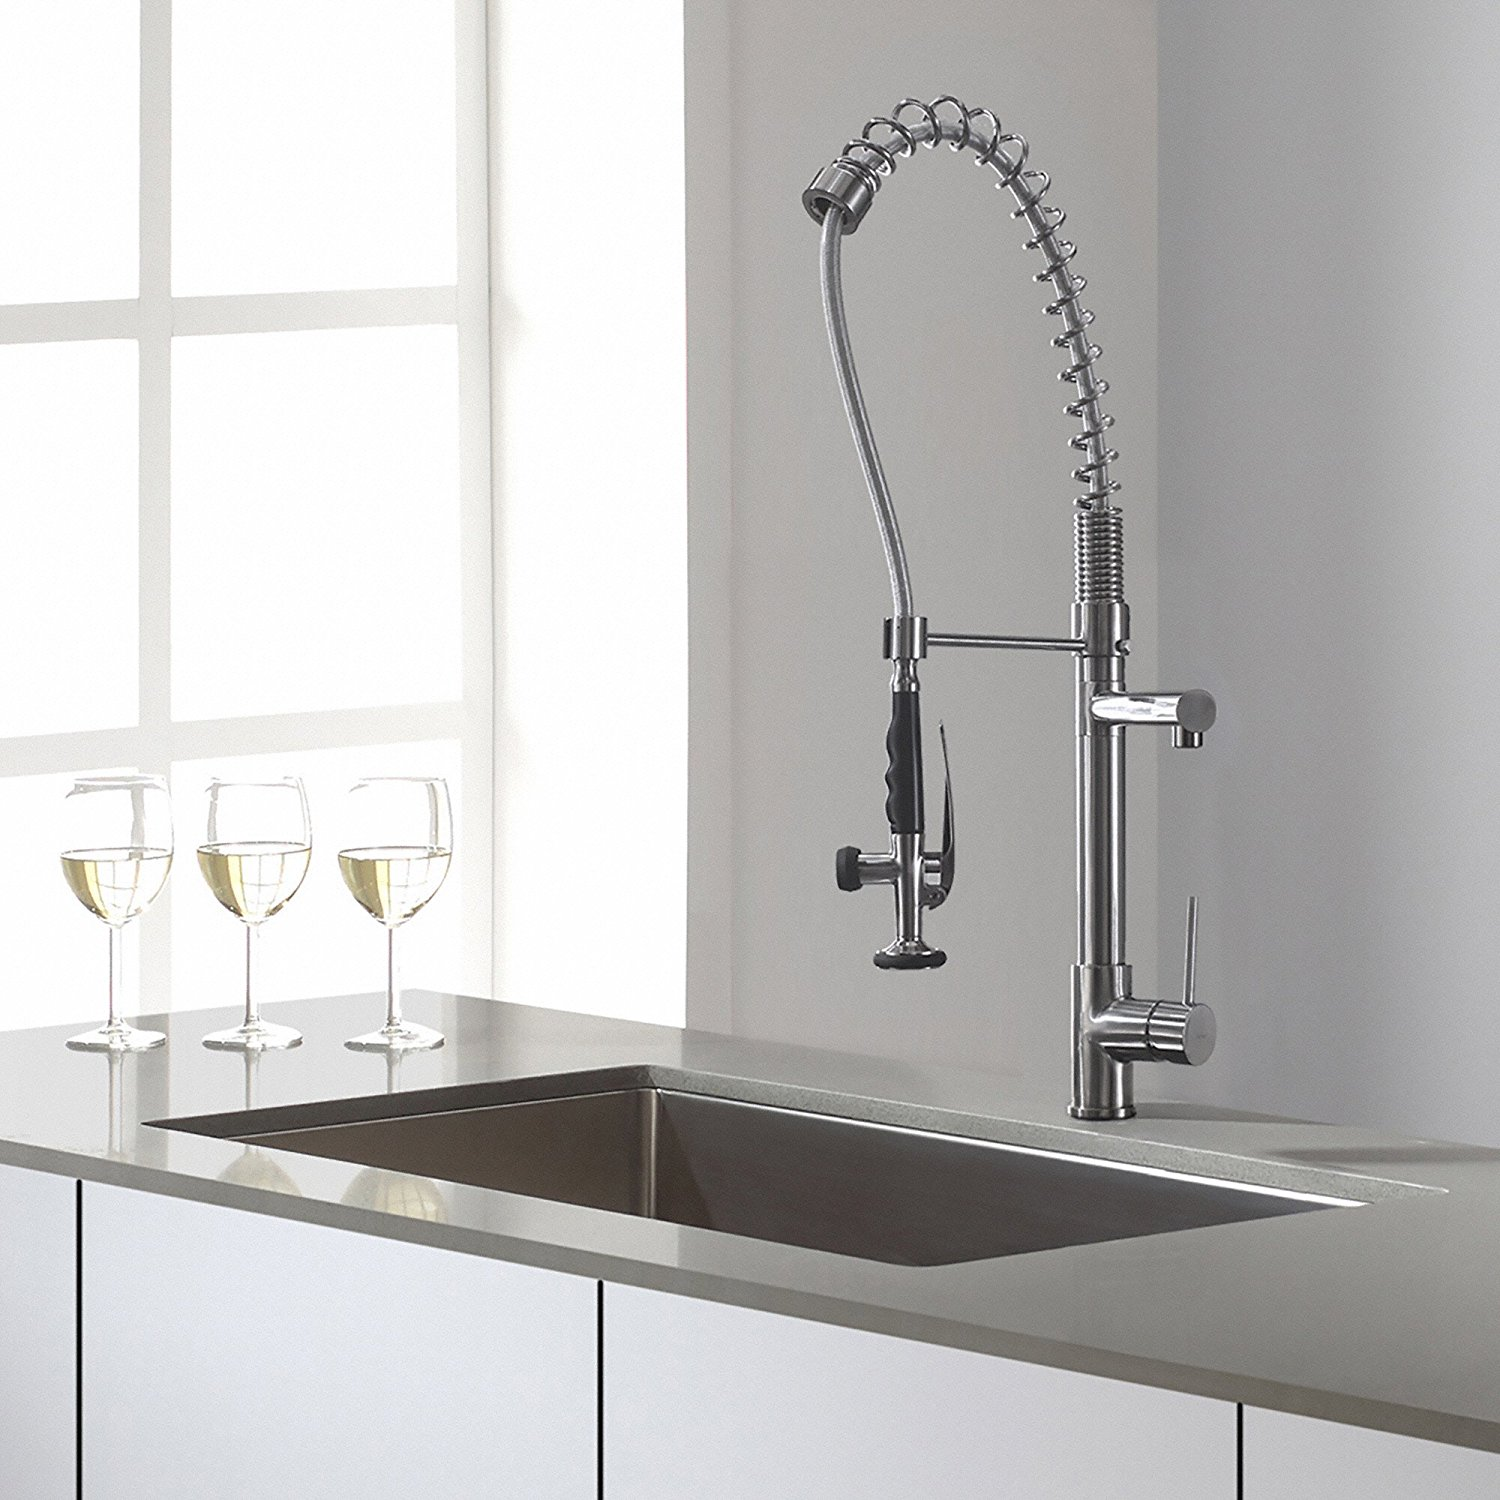 Kraus KPF-1602 Single Handle Pull Down Kitchen Faucet Commercial Style Pre-rinse in Chrome